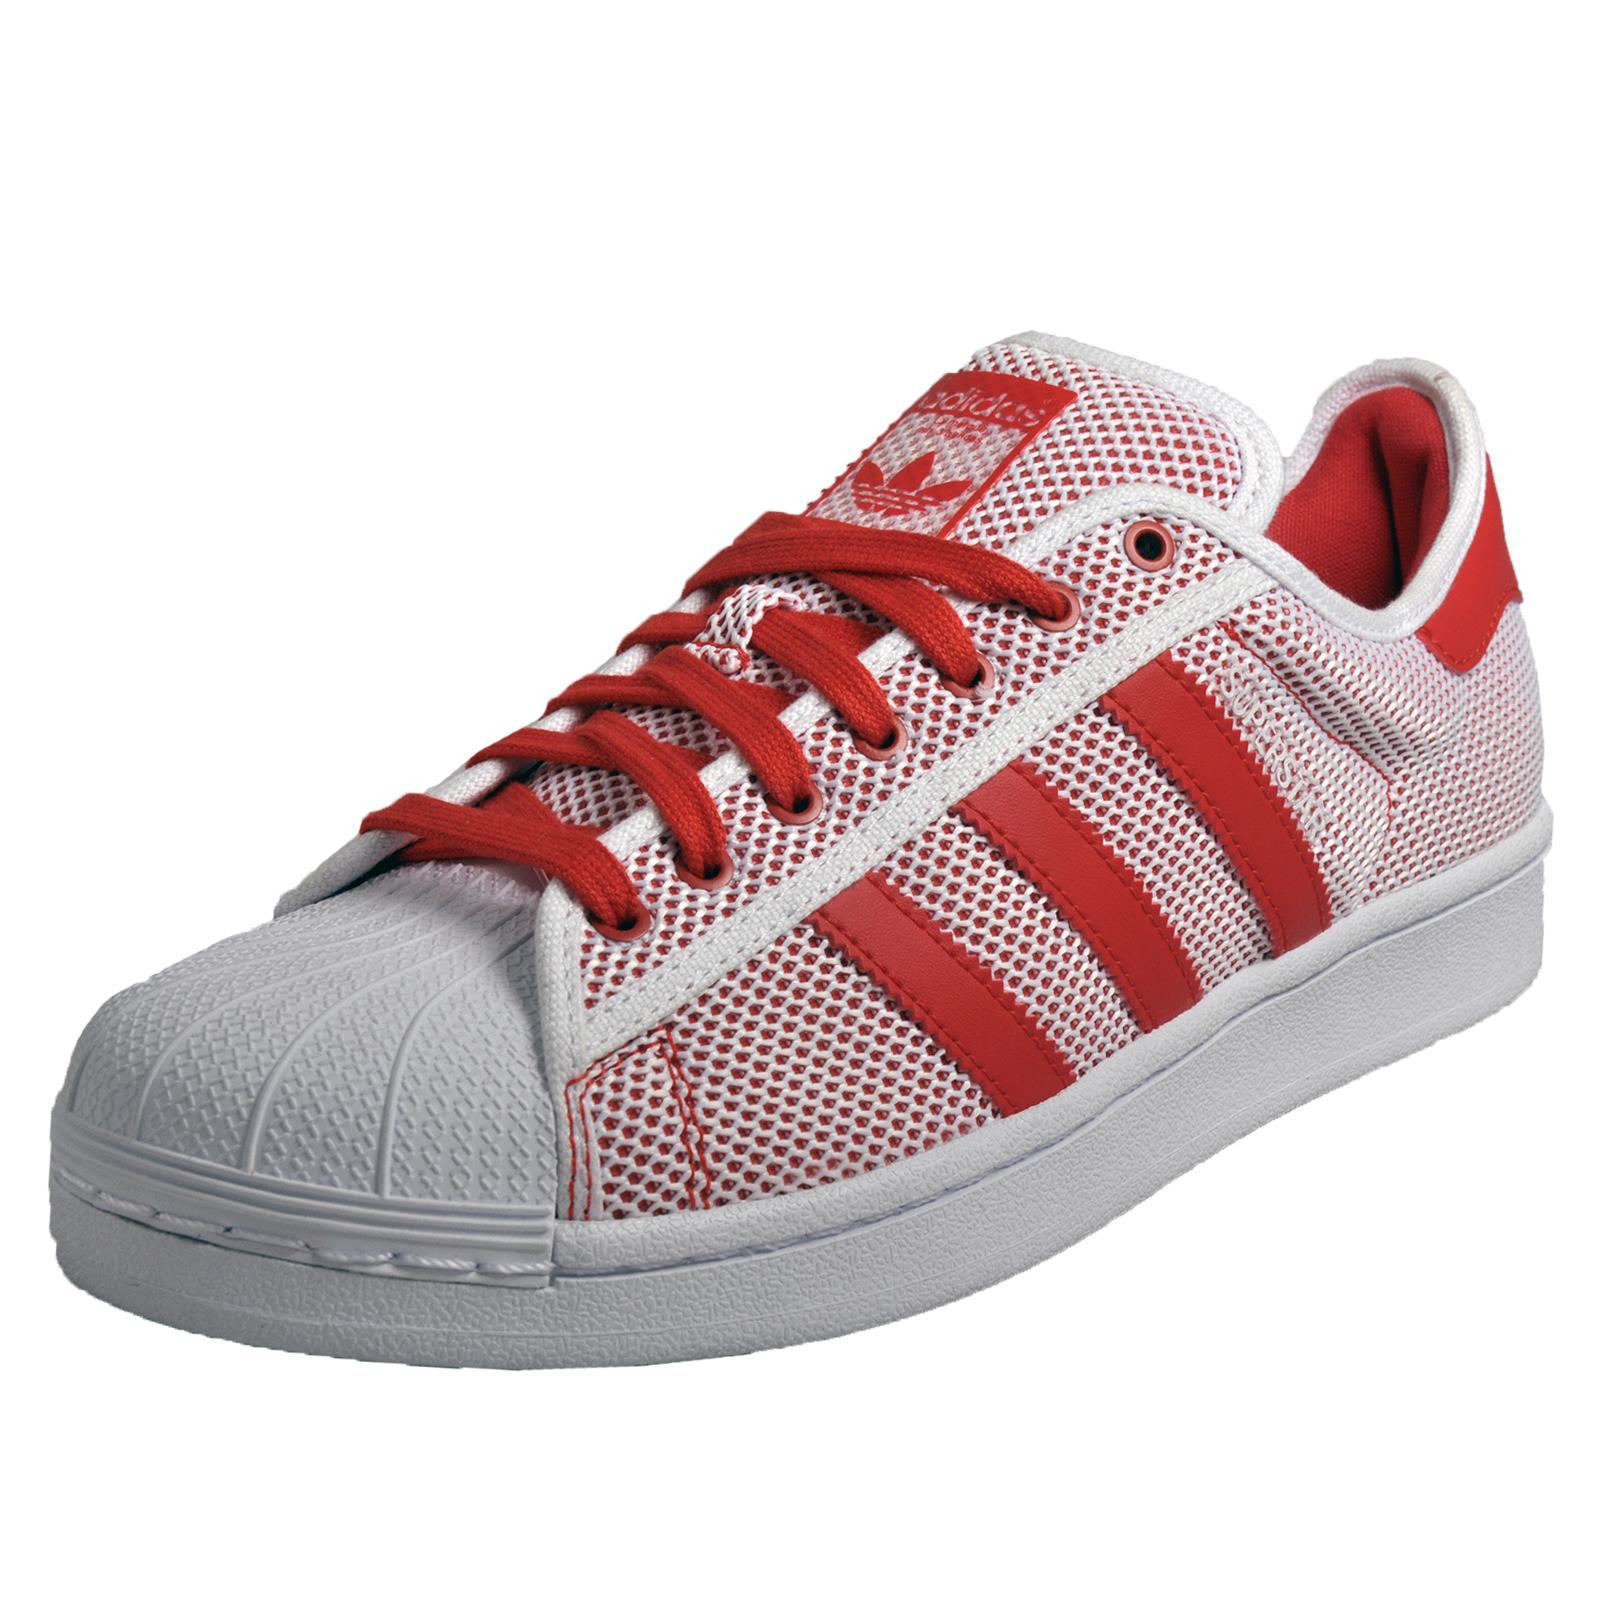 7d777454023c Simon s Sportswear Adidas WOMEN S SUPERSTAR 80S SHOES by